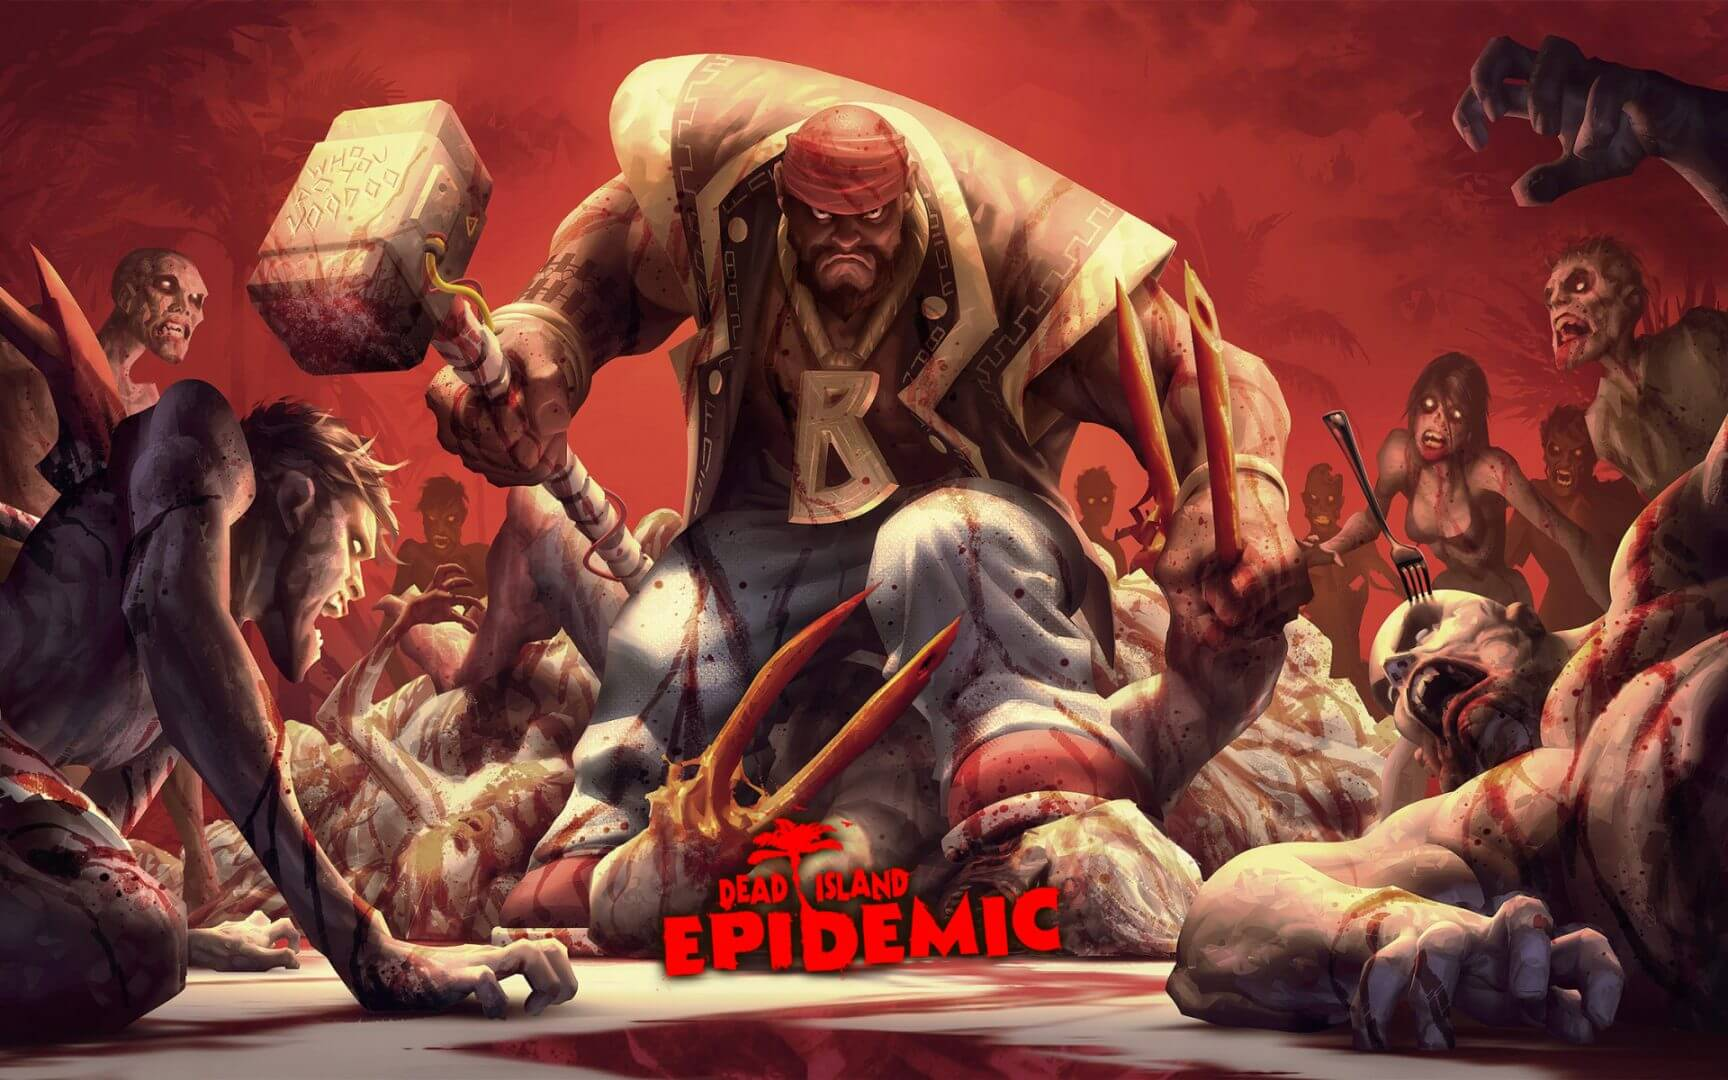 Dead Island Epidemic Shutting Down